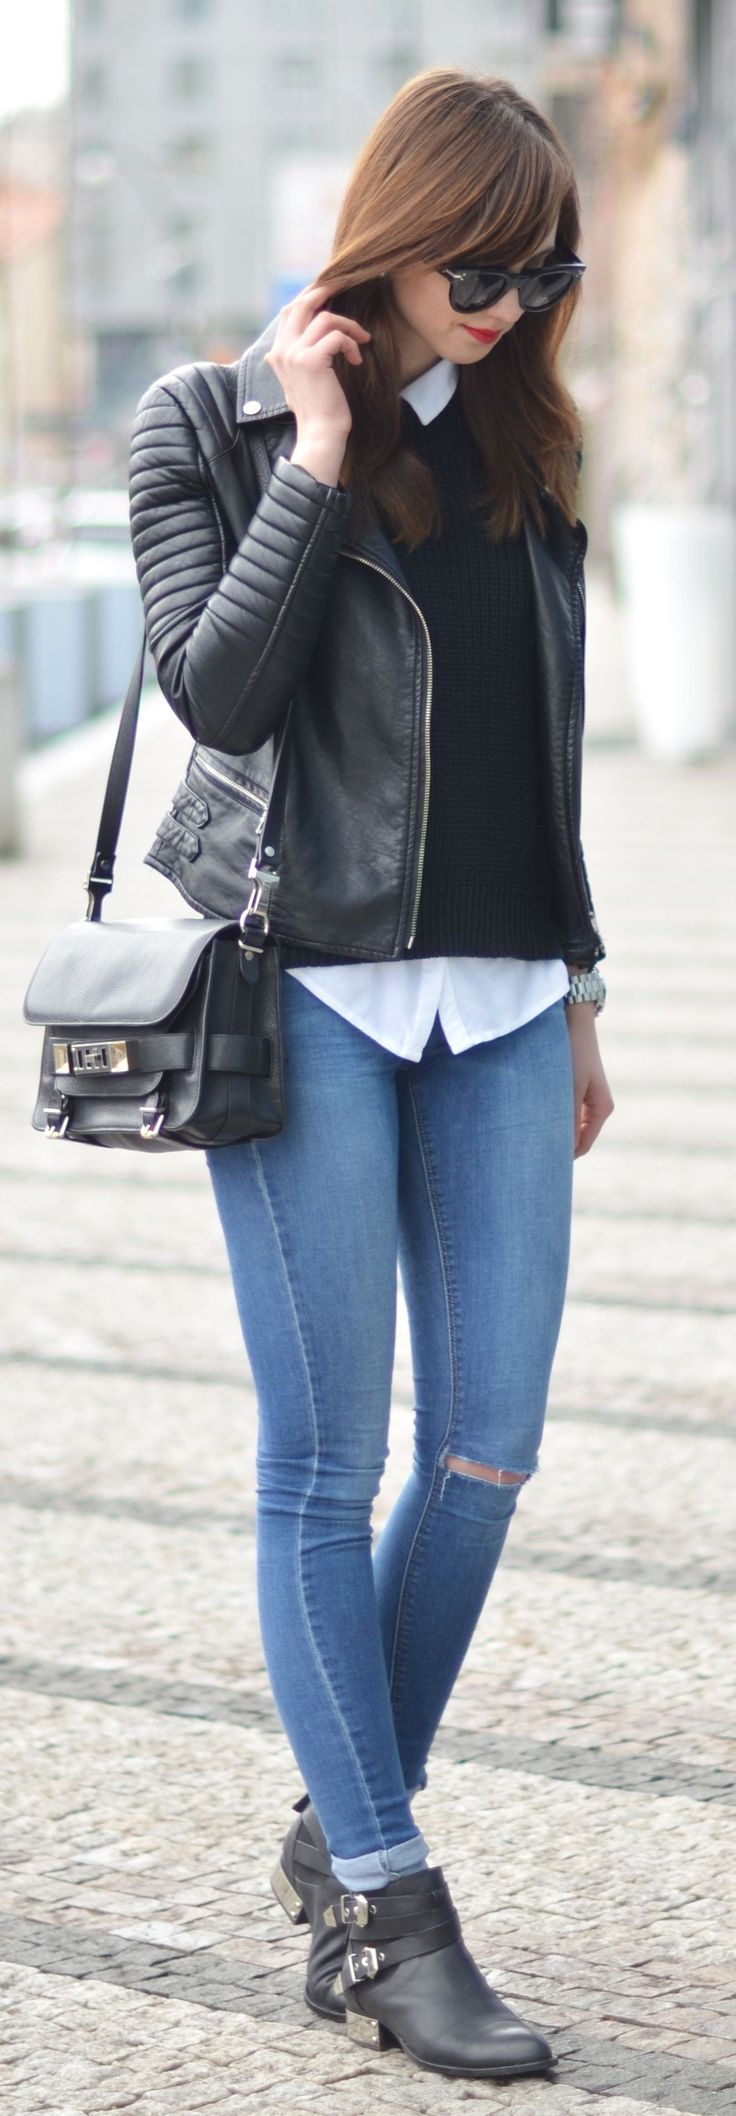 Comfy Basics Outfit by Vogue Haus